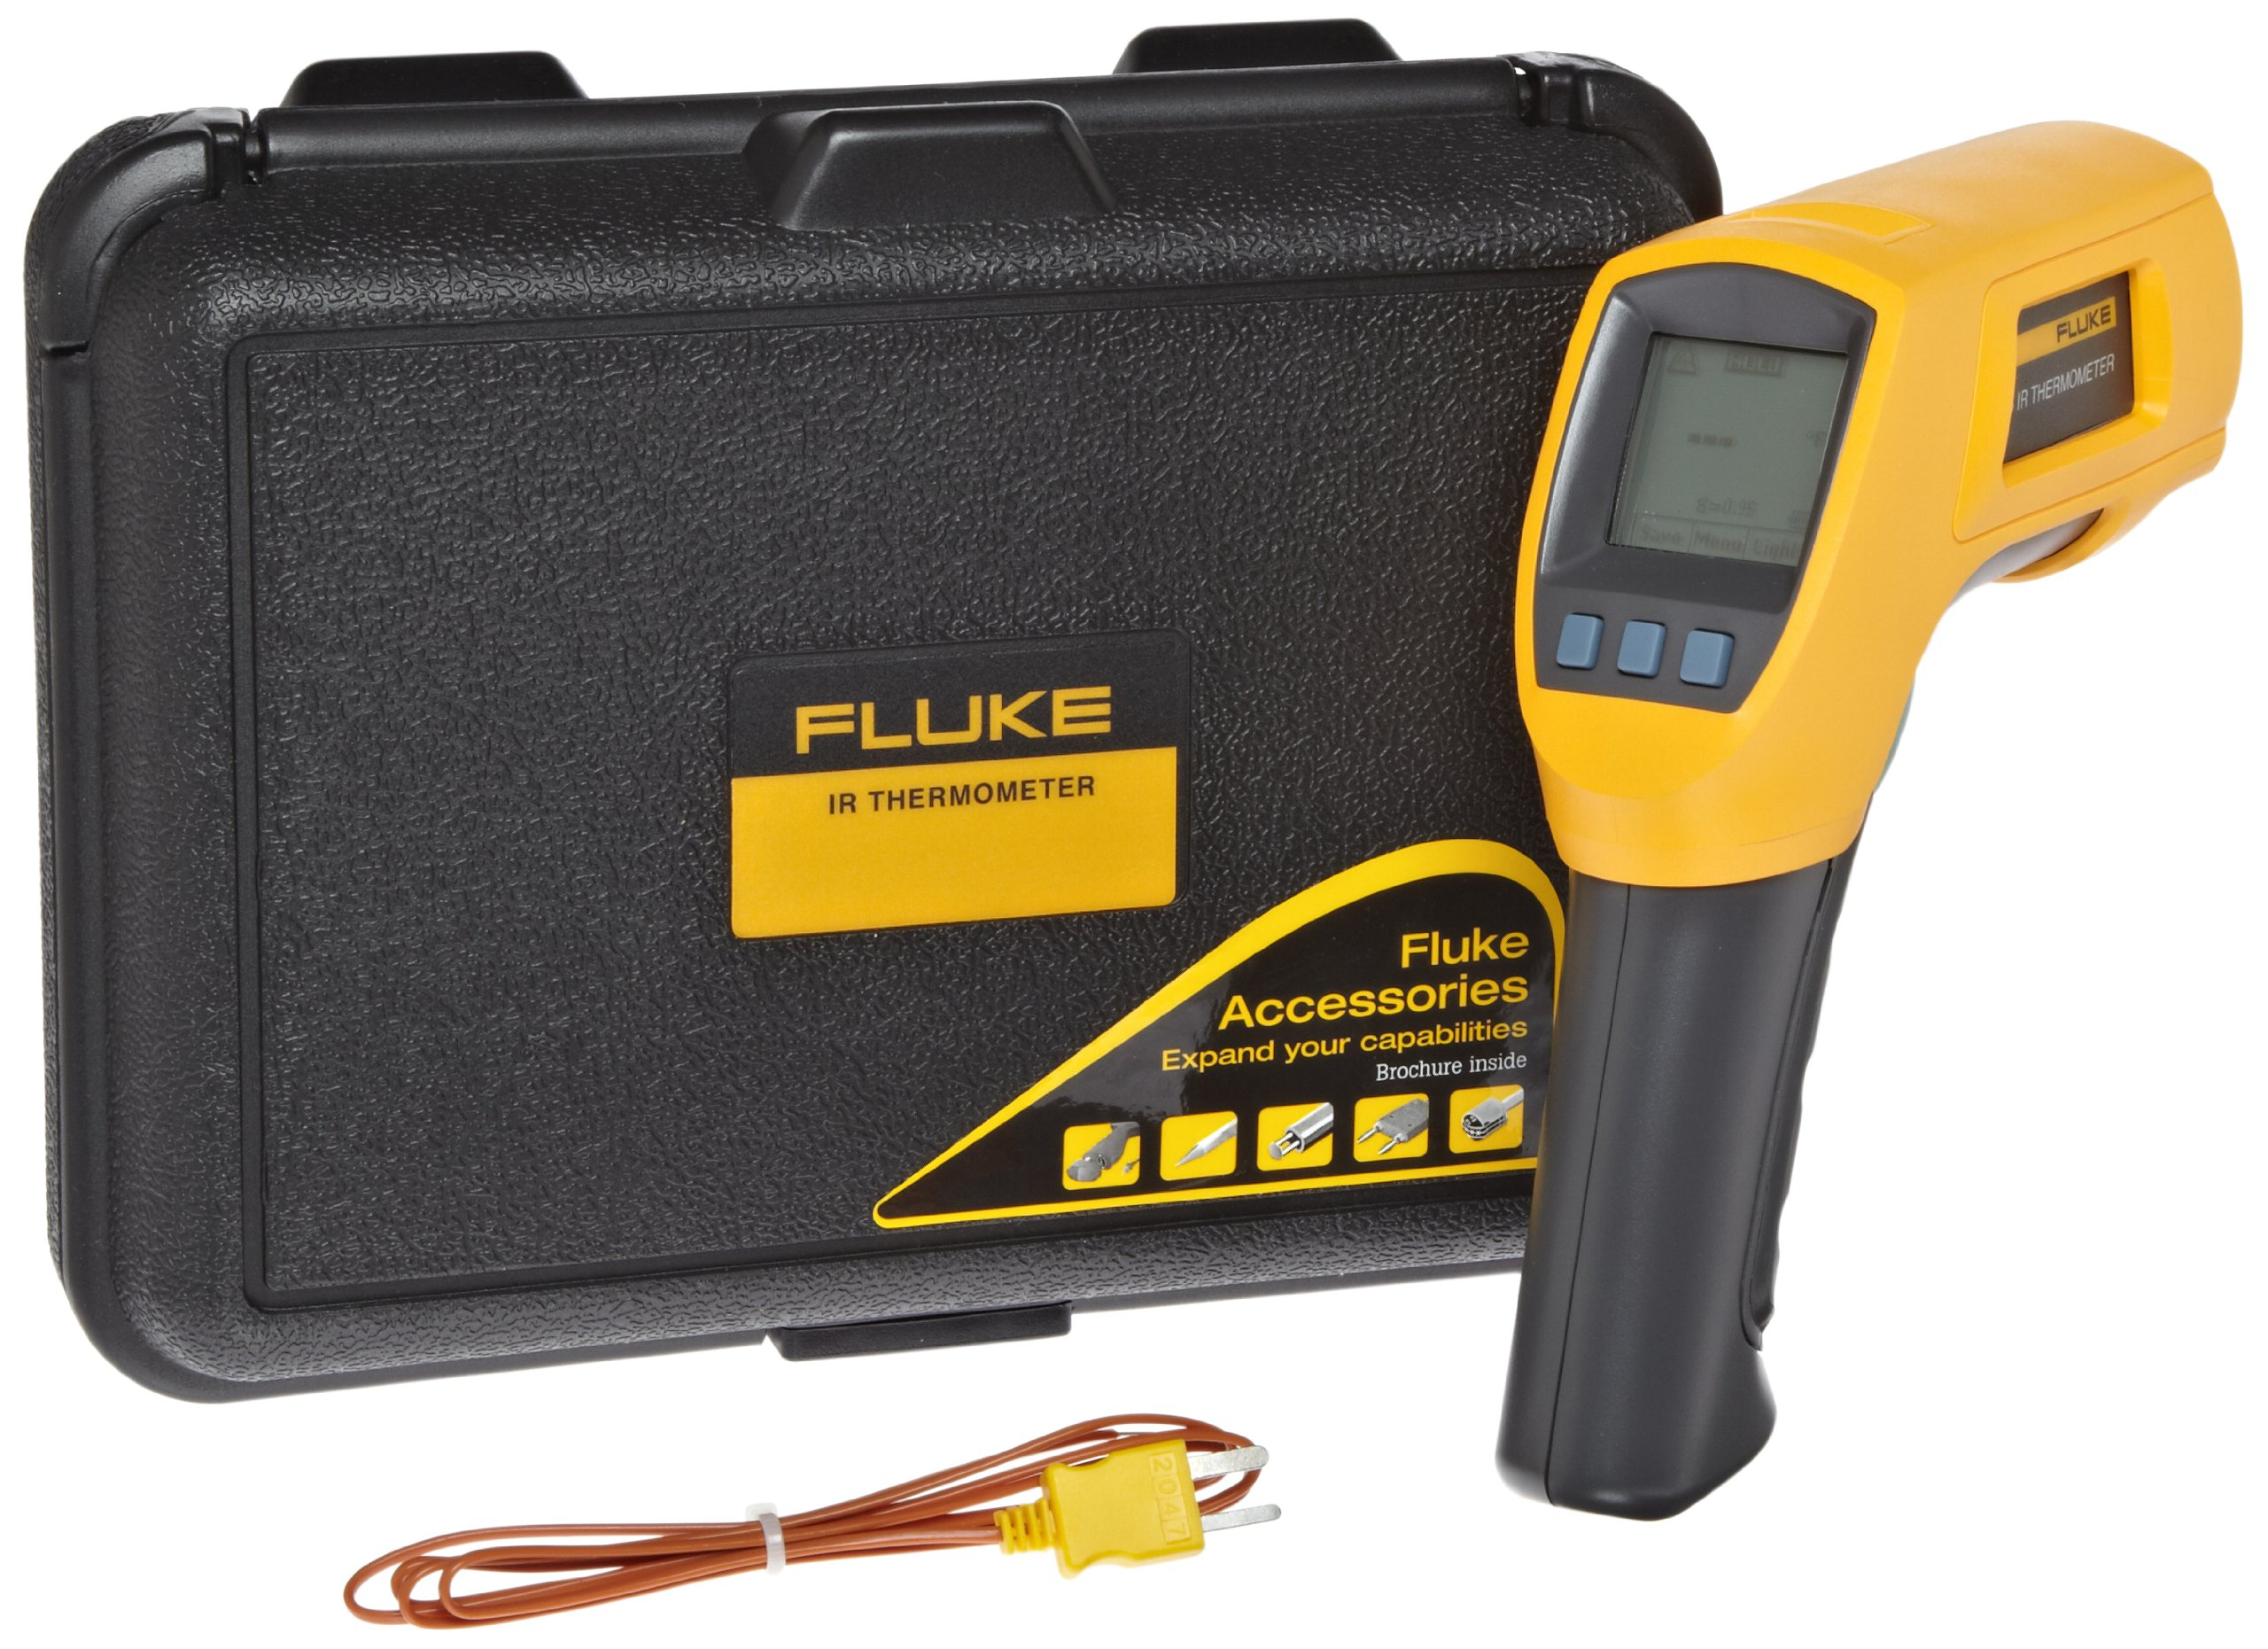 Fluke 566  Dual Infrared Thermometer, -40 to +1202 Degree F Range, Contact/Non Contact by Fluke (Image #2)